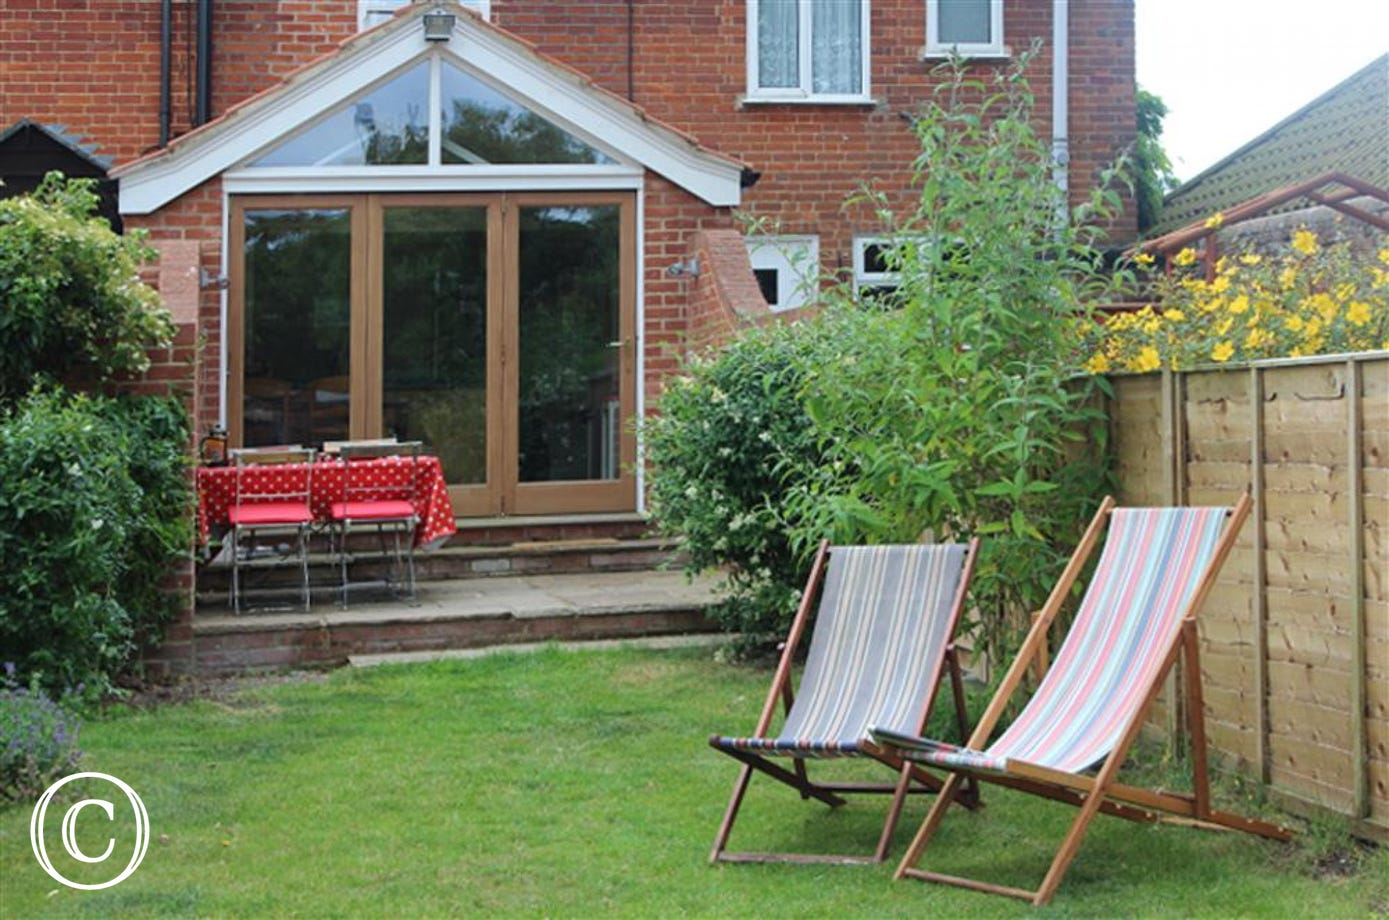 Enjoy this long garden with lawn and outside furniture like these stripy deck chairs.